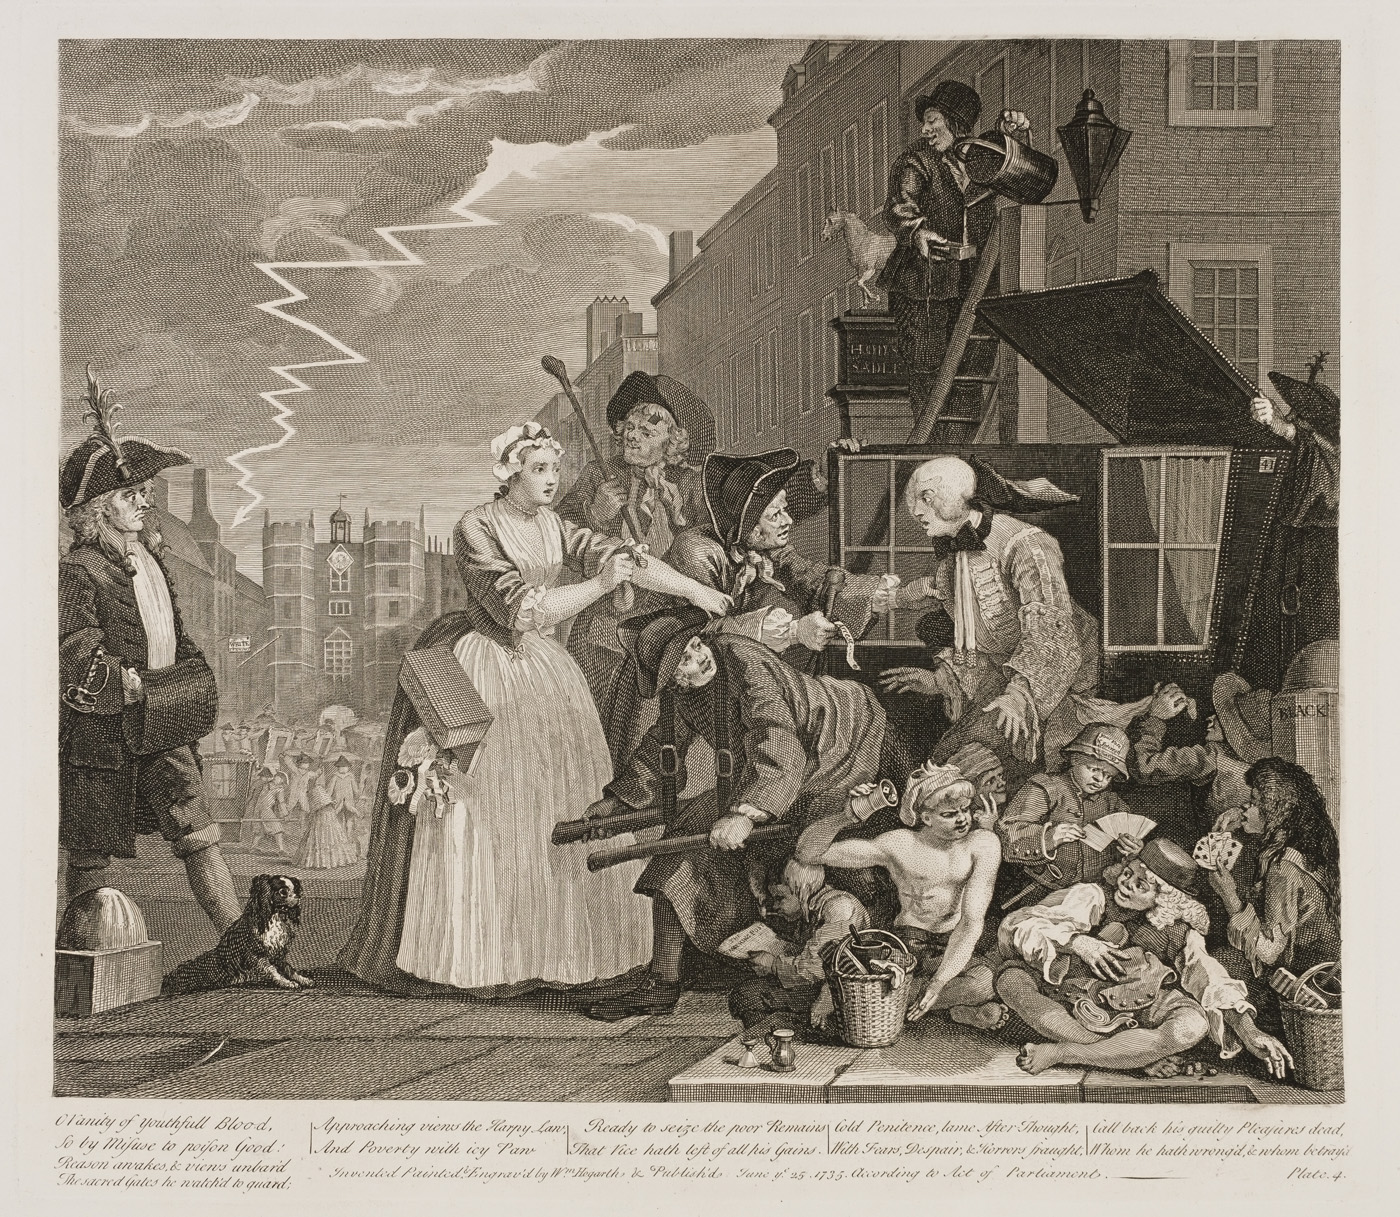 William Hogarth - The Rake's Progress plate 4